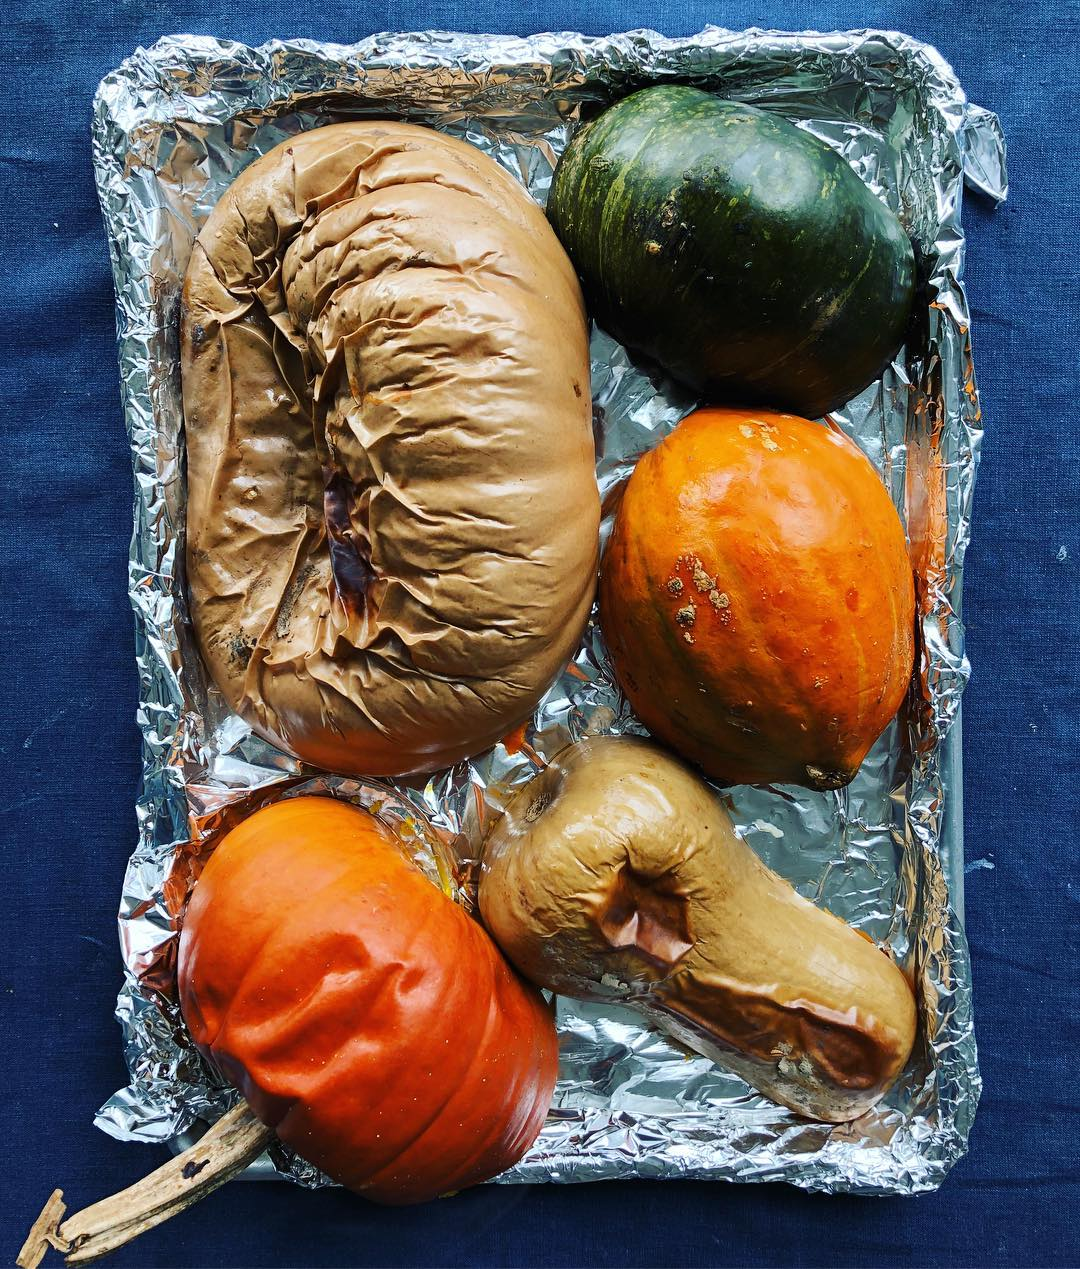 roasted pumpkins and squashes